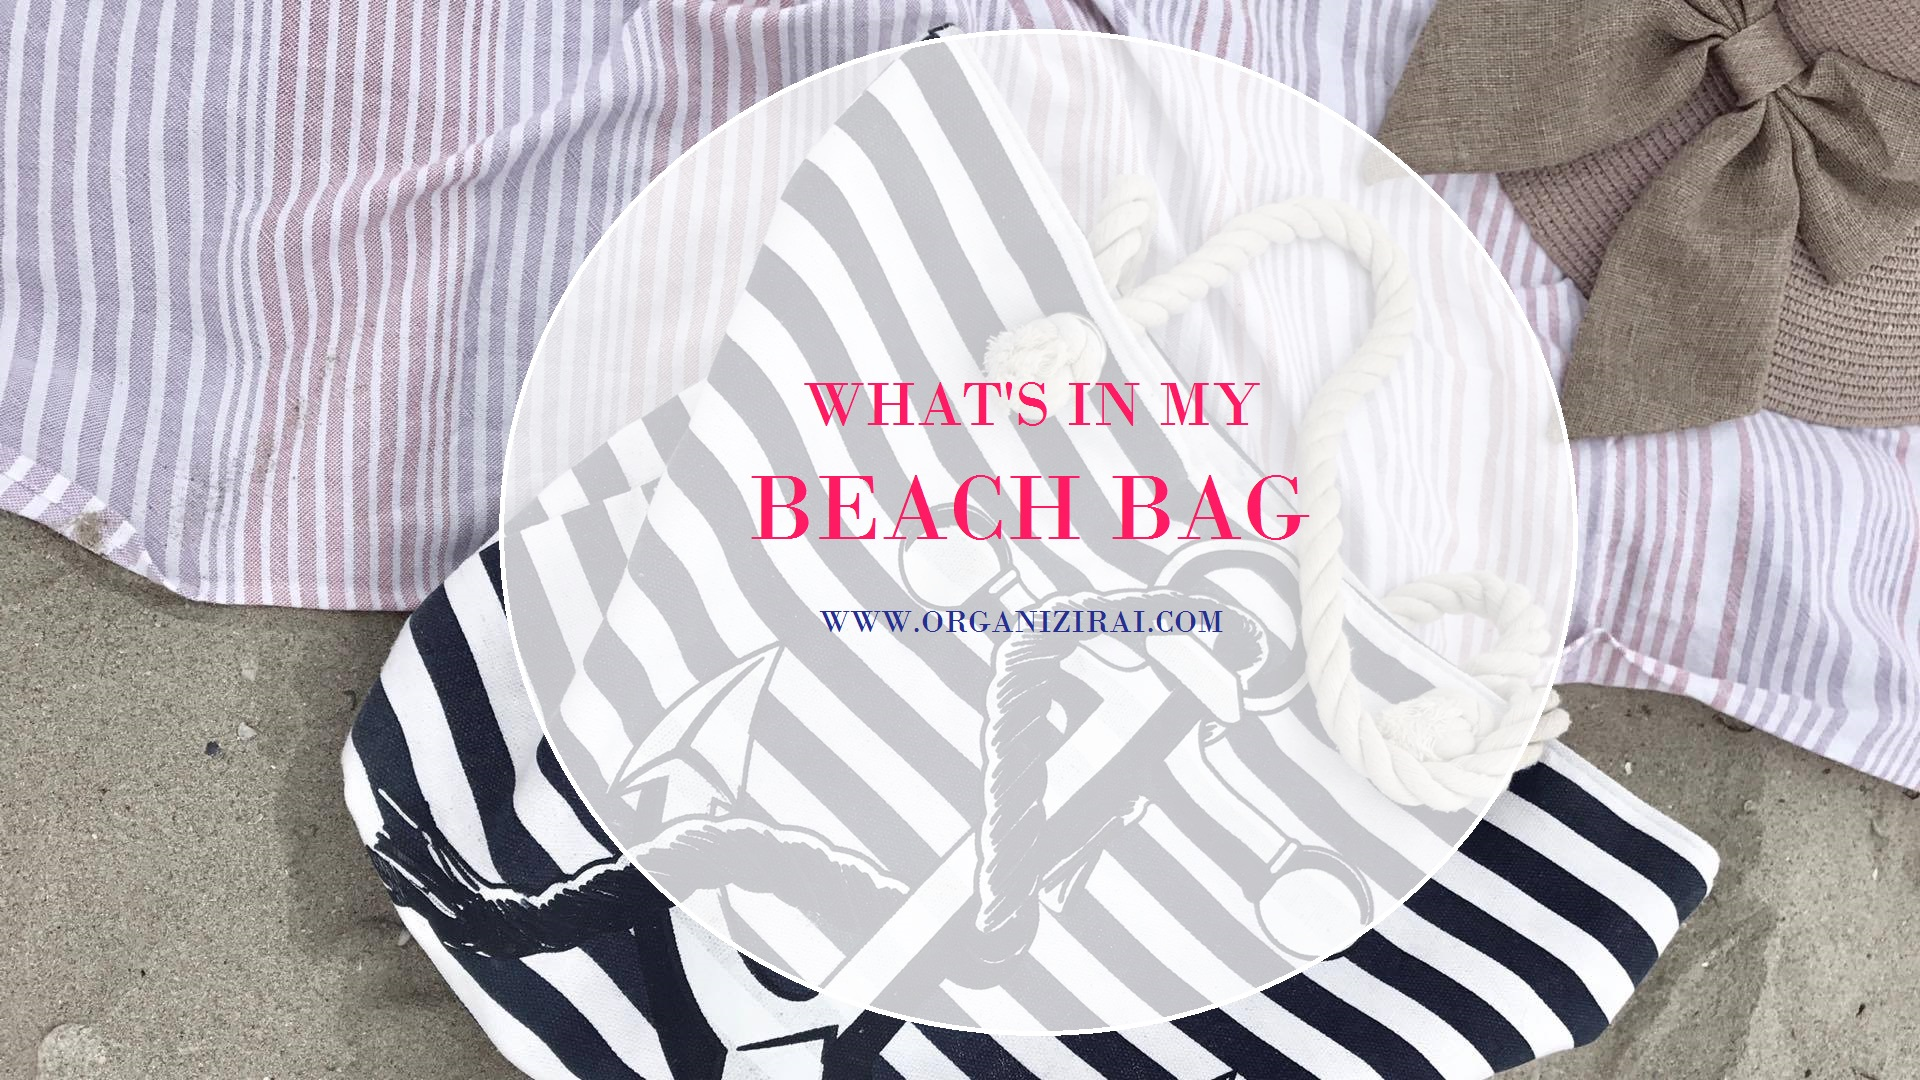 whats-in-my-beach-bag-organizing-blog-bulgarian-blogger-summer-bag-organizirai.com